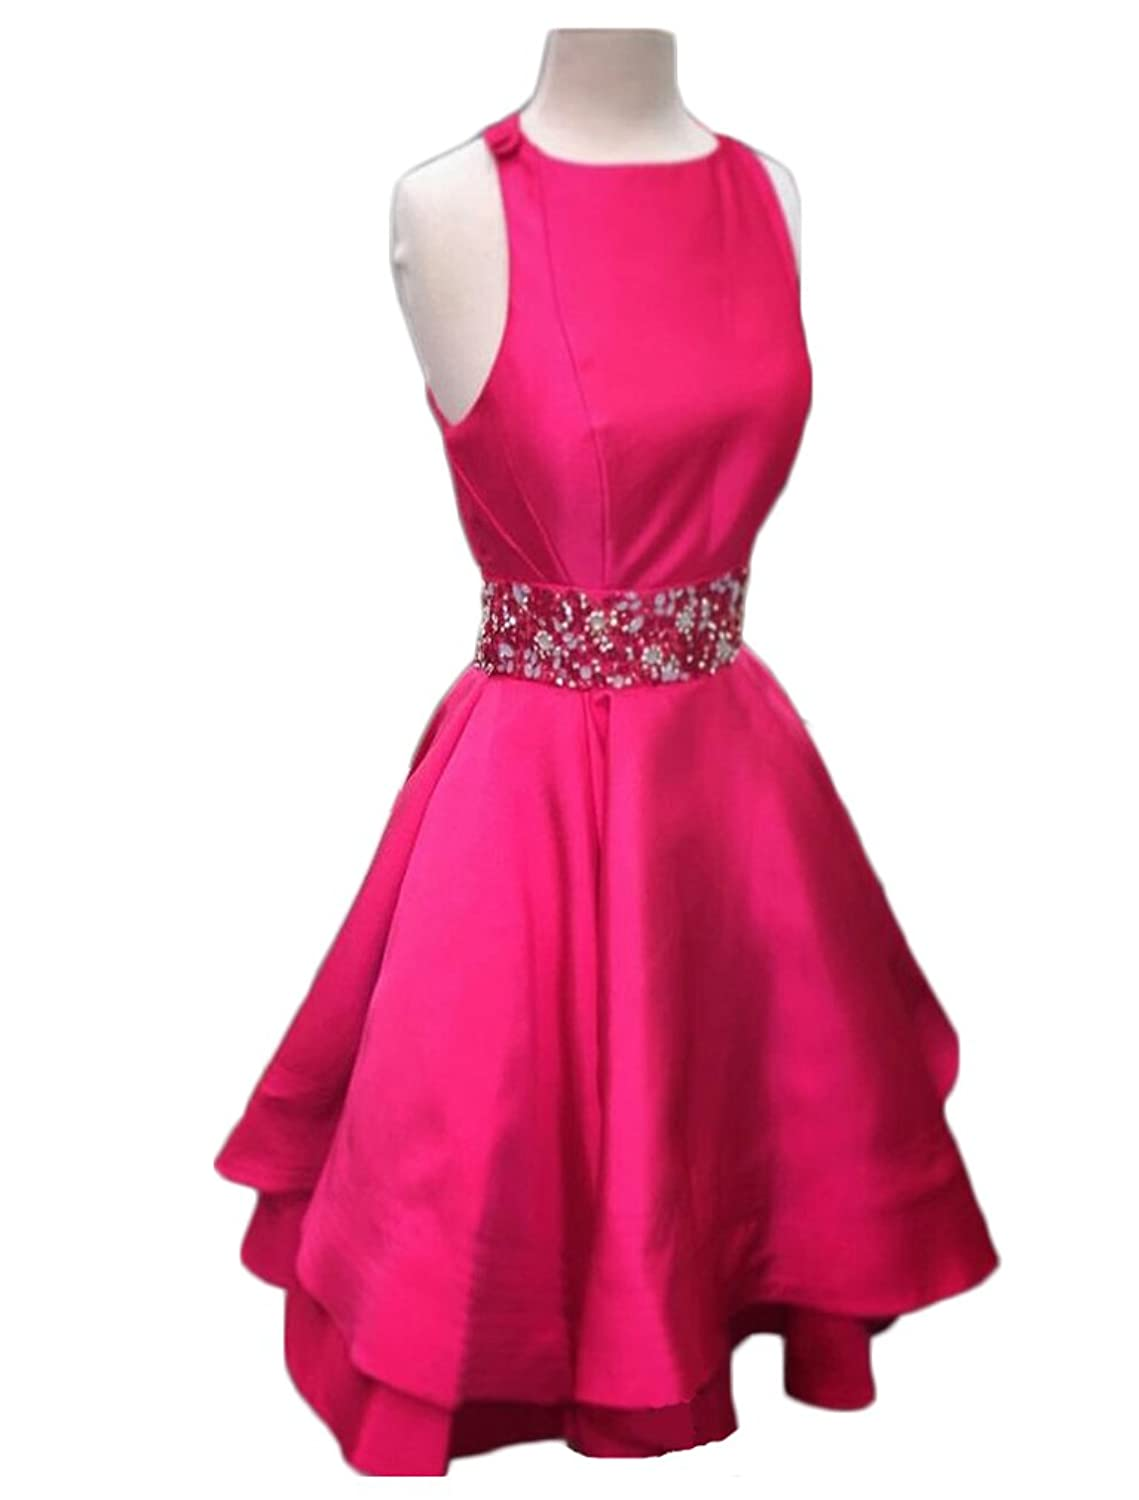 TBGirl Hot Style A-line Jewel Neck Cross Back Satin Homecoming Dresses